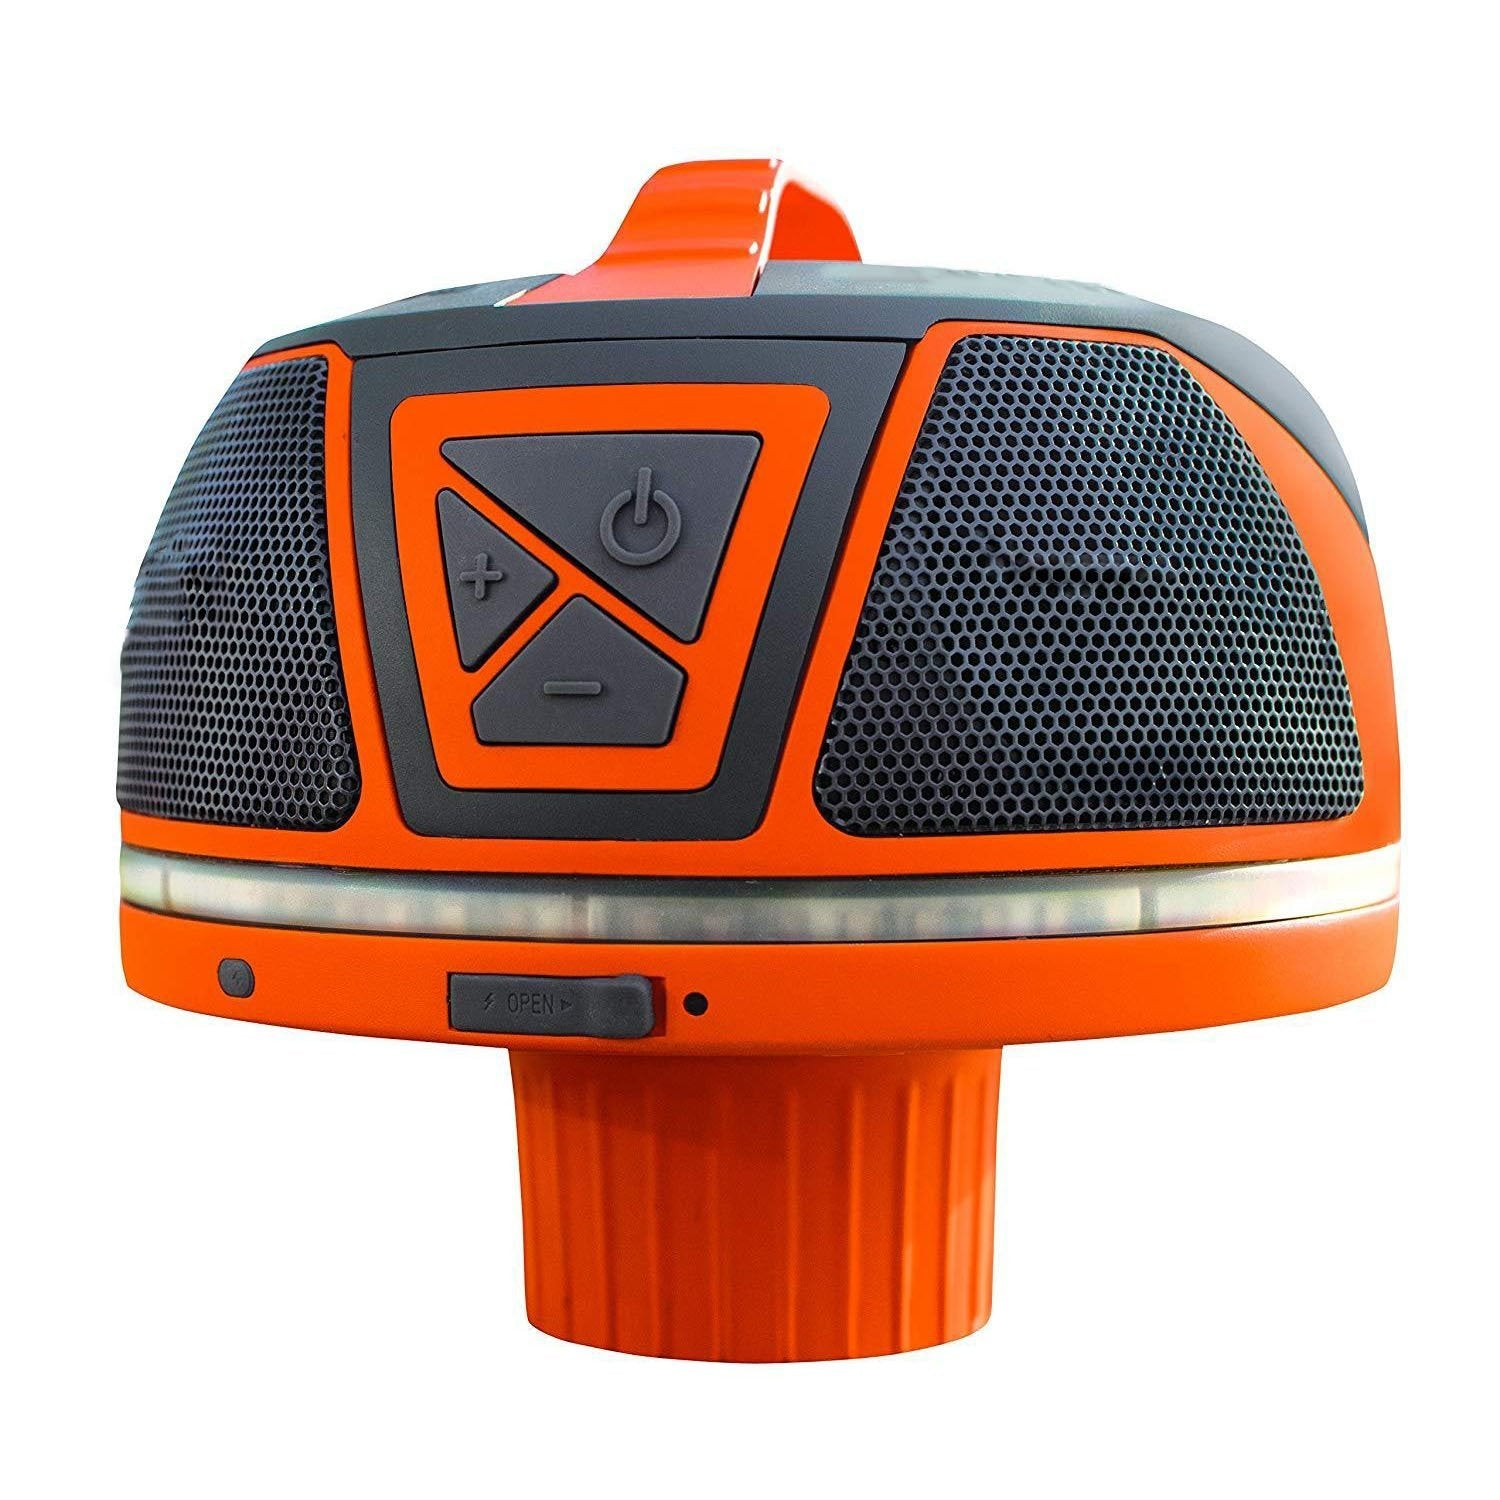 360 Degree Sound Waterproof Bluetooth Speaker